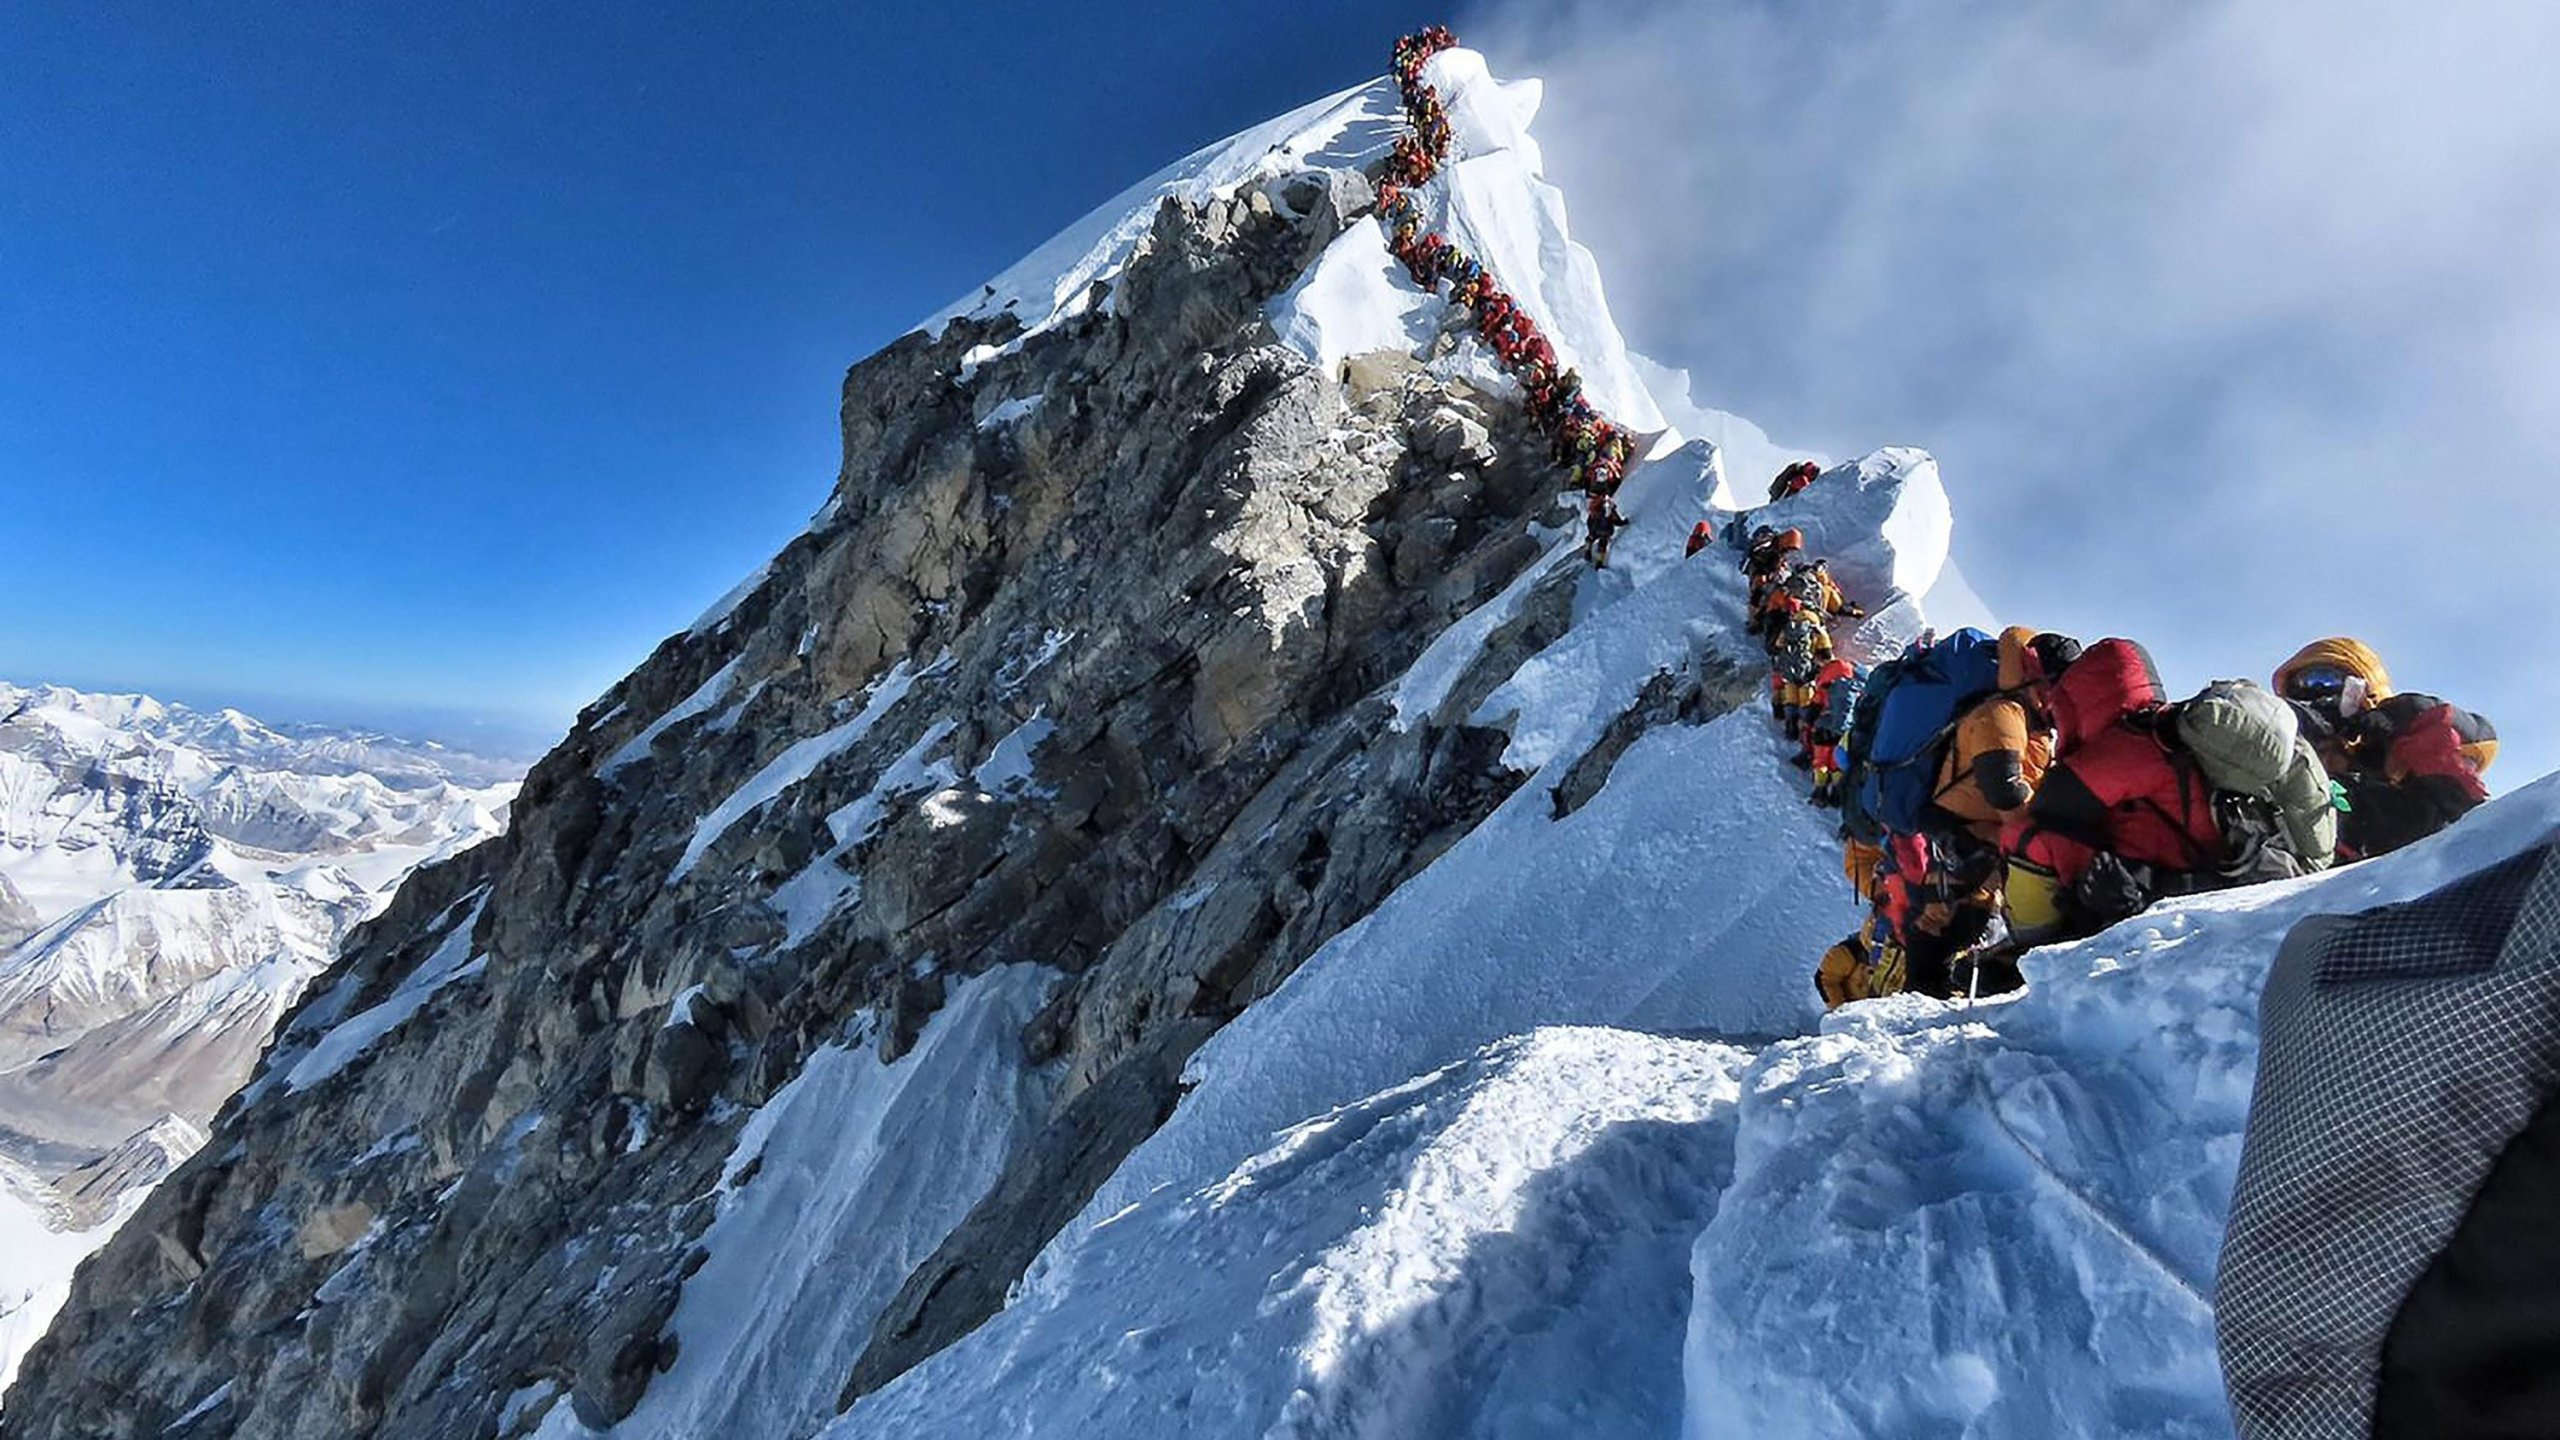 Climbers wait to reach the summit of Everest in this image taken May 22. (Credit: Project Possible/Getty Images via CNN)